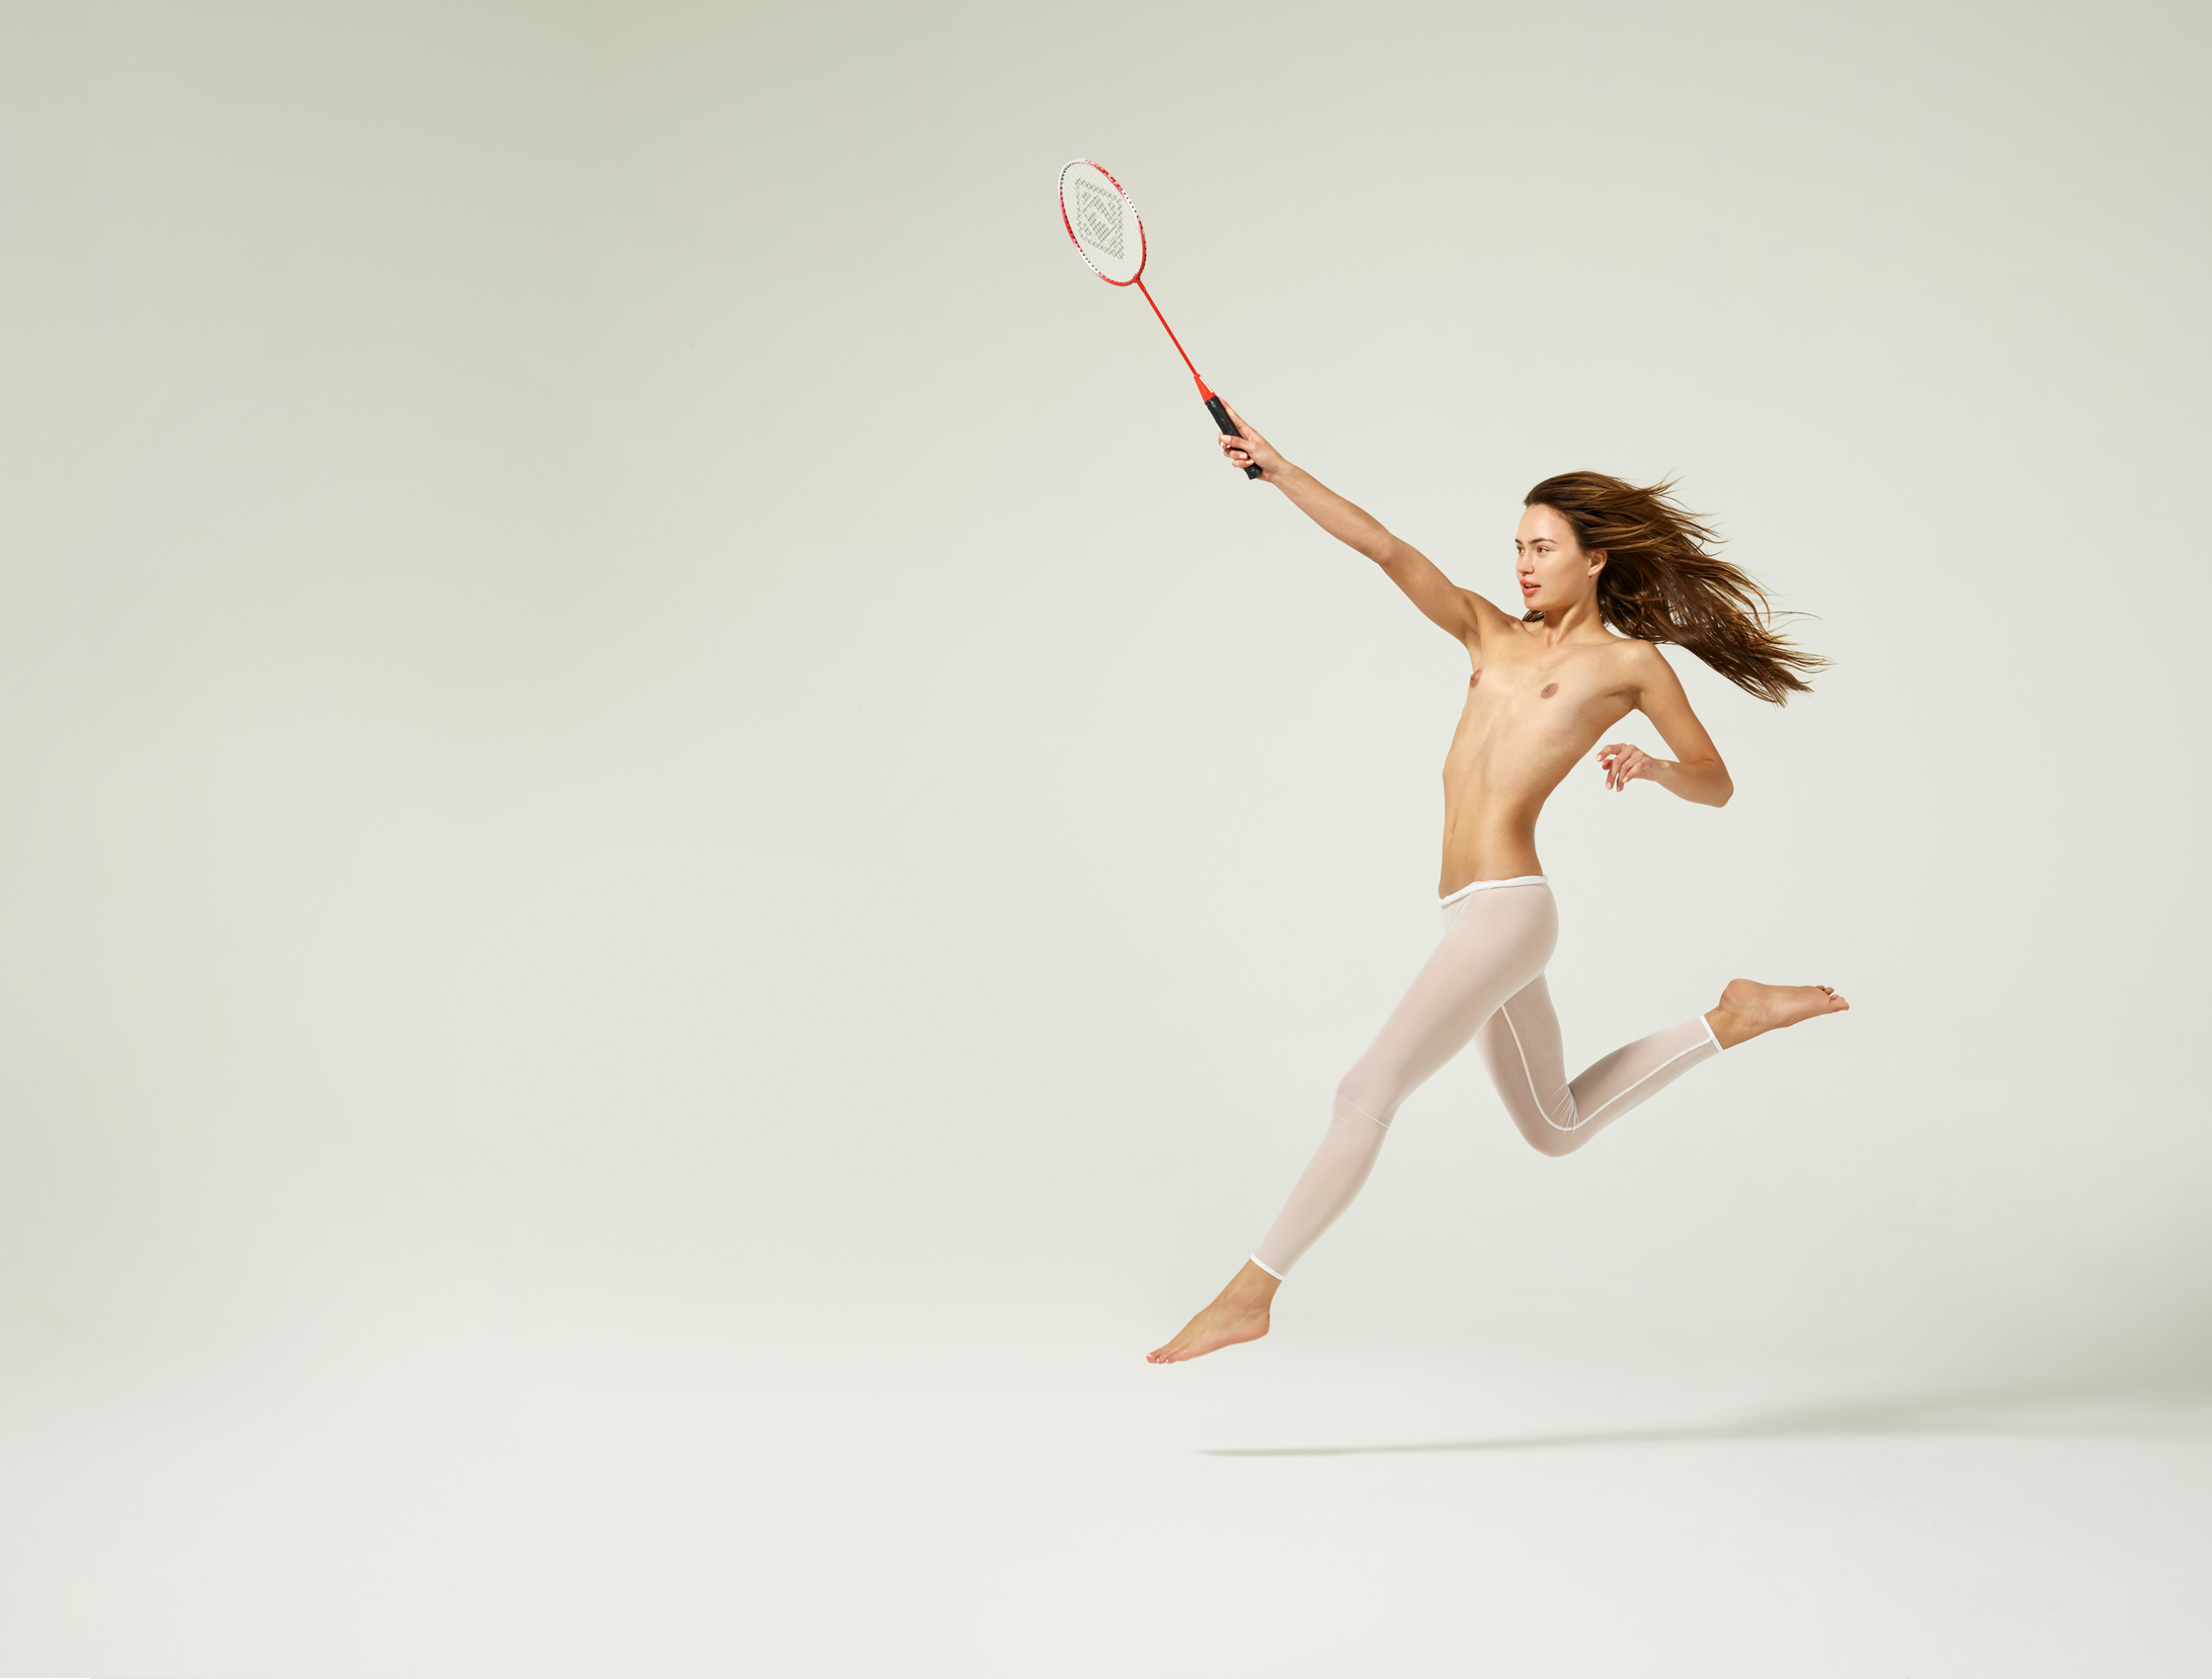 Musilek-Stan-American-Apparel-Europe-Leggings-Badminton-Movement-Fashion-Sports-Photographer-Advertising